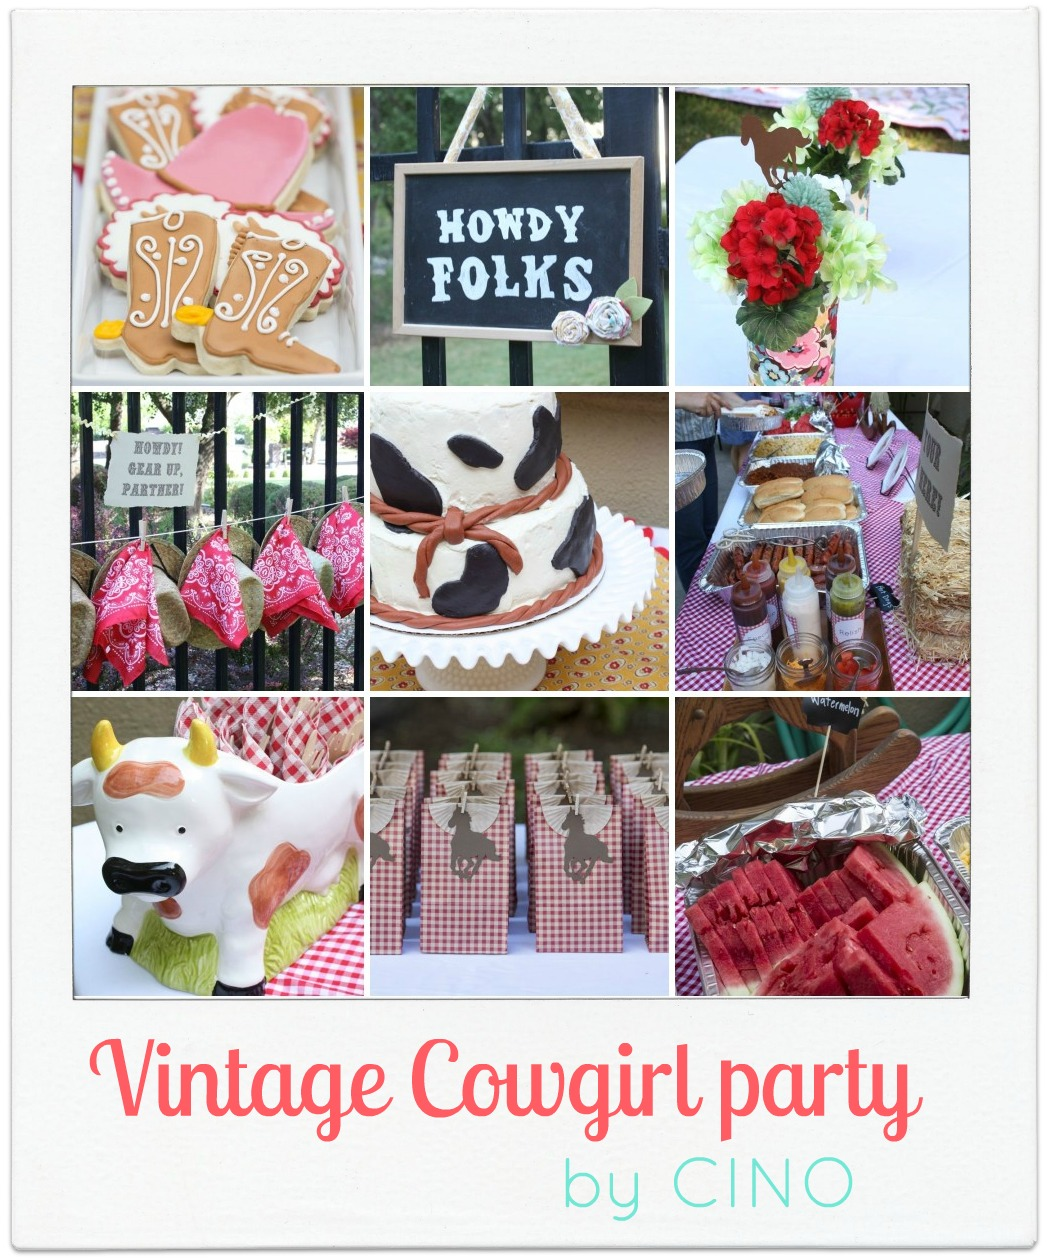 Charlottes Vintage Cowgirl Party